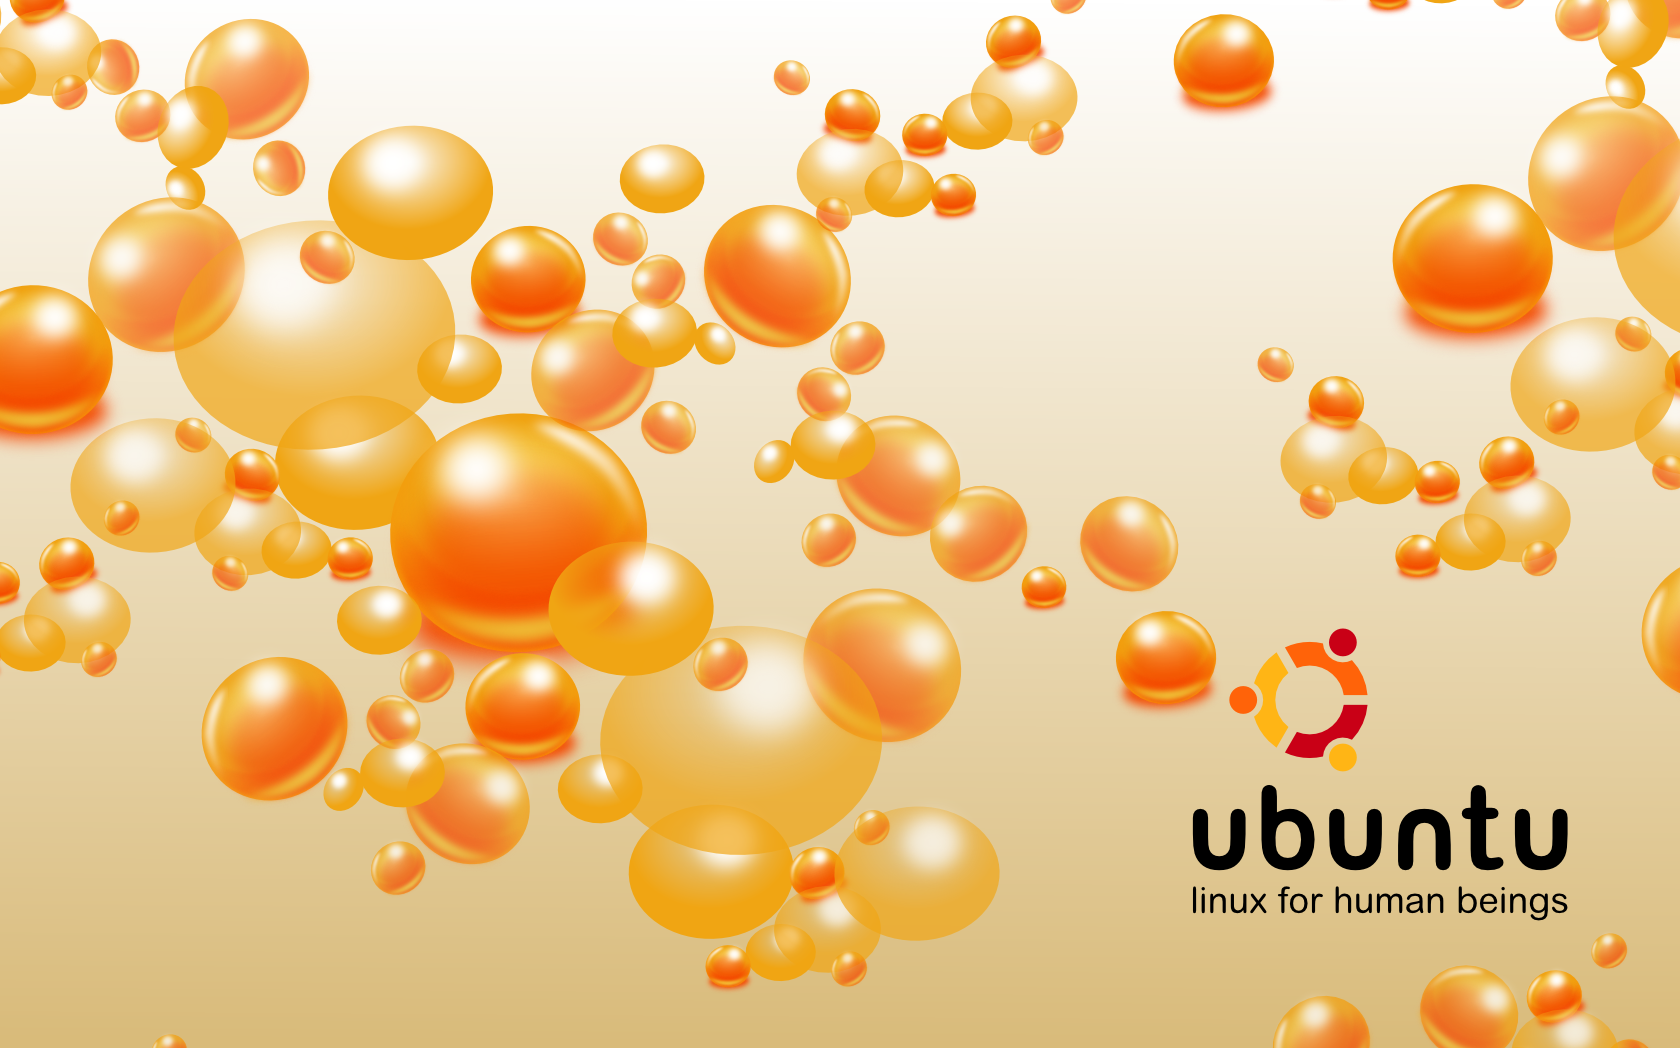 Ubuntu bubbles by QuicheLoraine